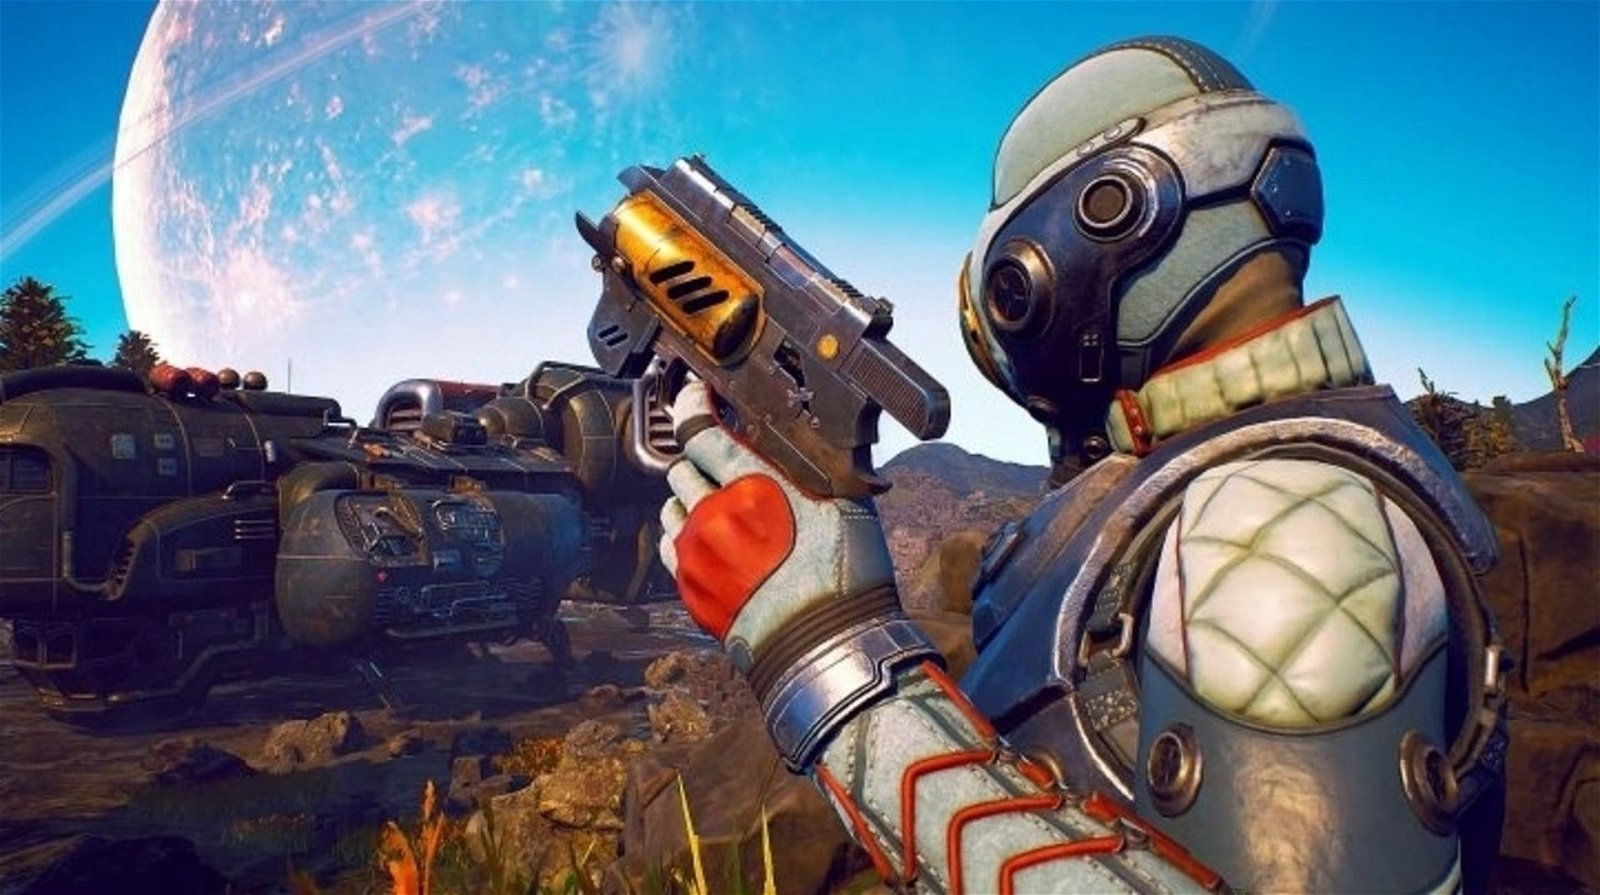 Exploring The Outer Worlds: An Interview with Senior Narrative Designer Megan Starks. 1